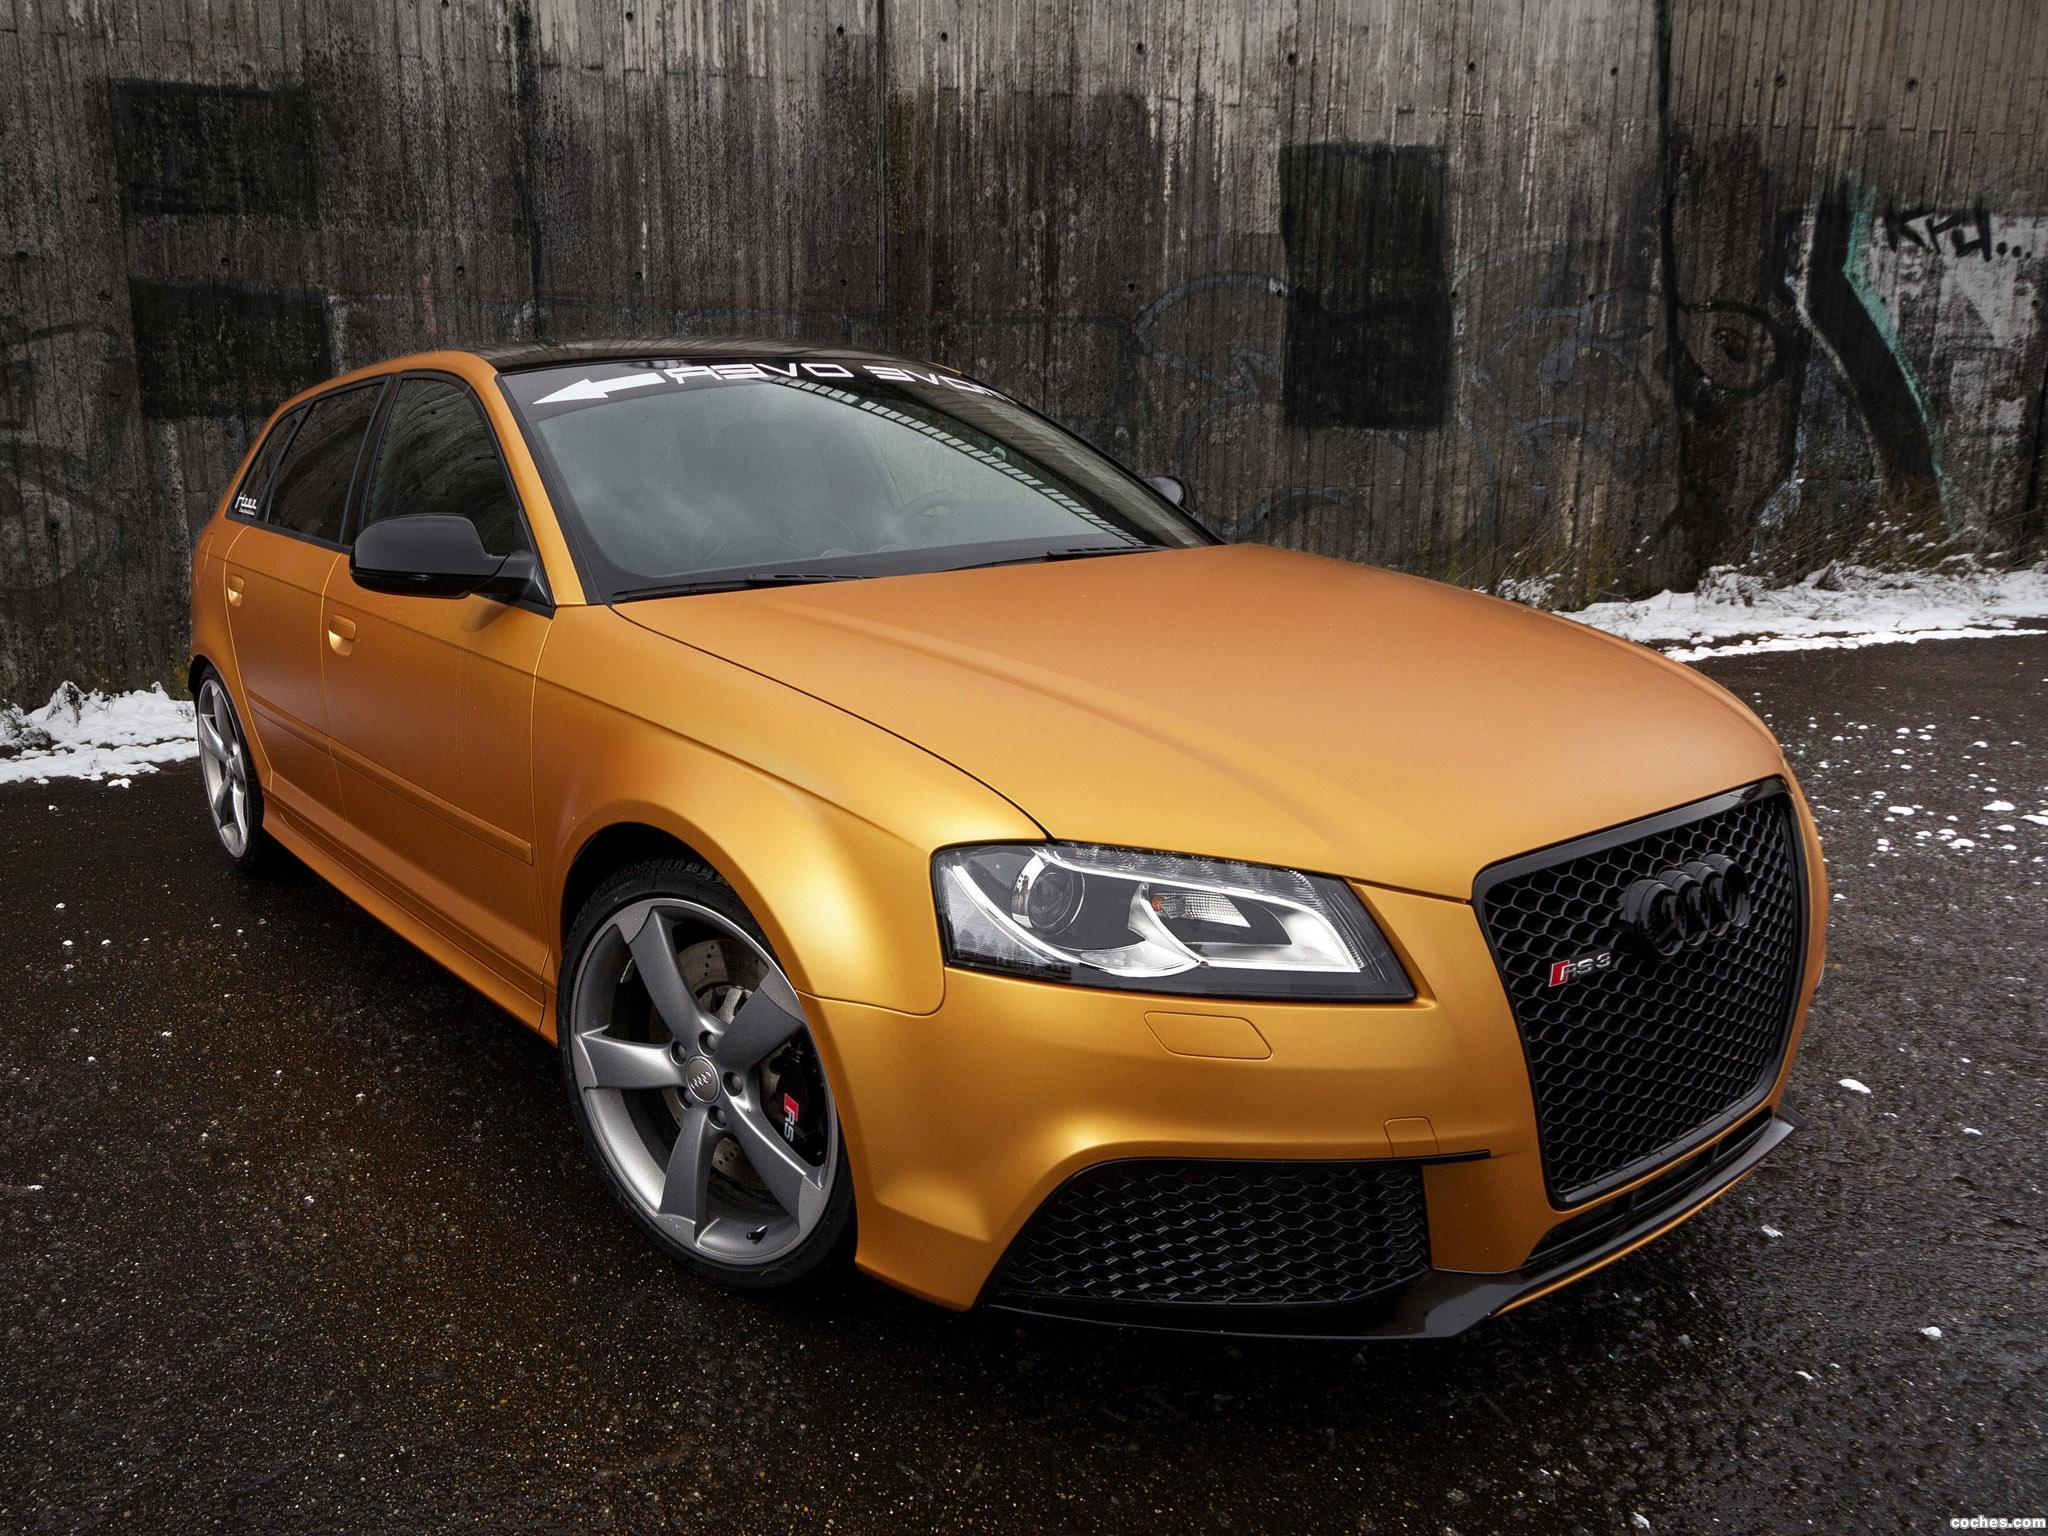 Foto 0 de Audi RS3 Sportback Gold Orange by Schwabenfolia 2013